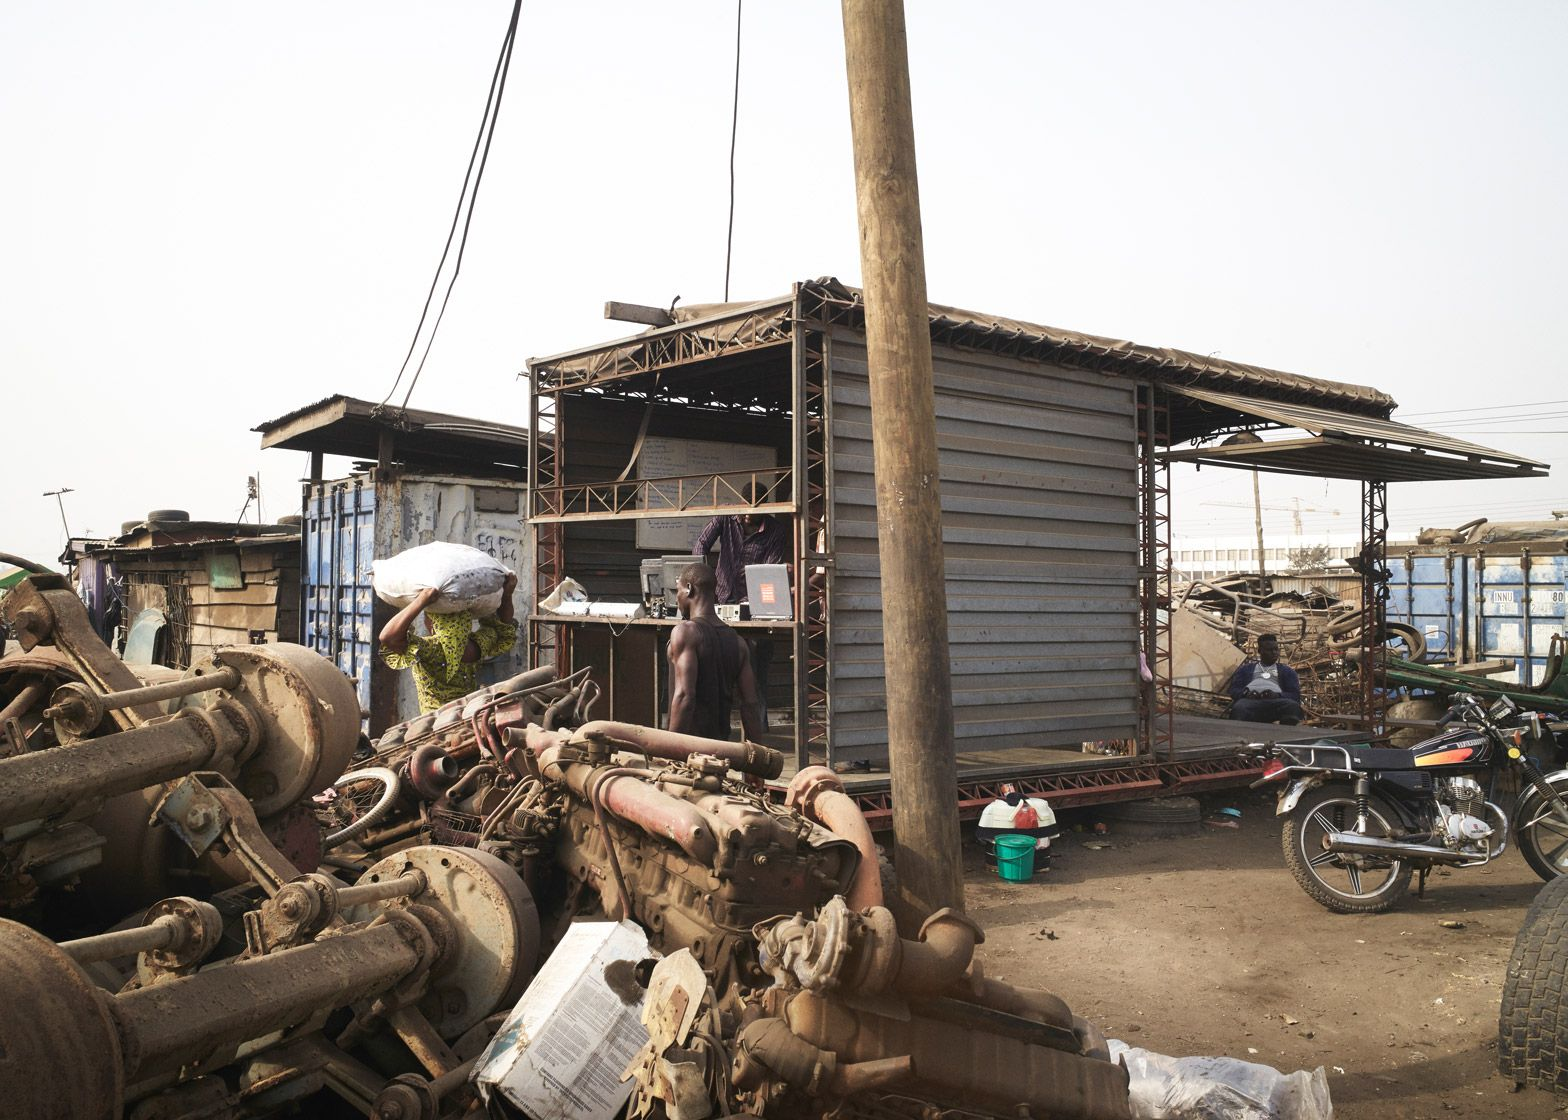 amp-spacecraft-makerspace-mobile-structures-agbogbloshie-ghana-worlds-largest-electrical-waste-dump-africa-potential-micro-industry-platforms-low-design-office_dezeen_1568_4.jpg